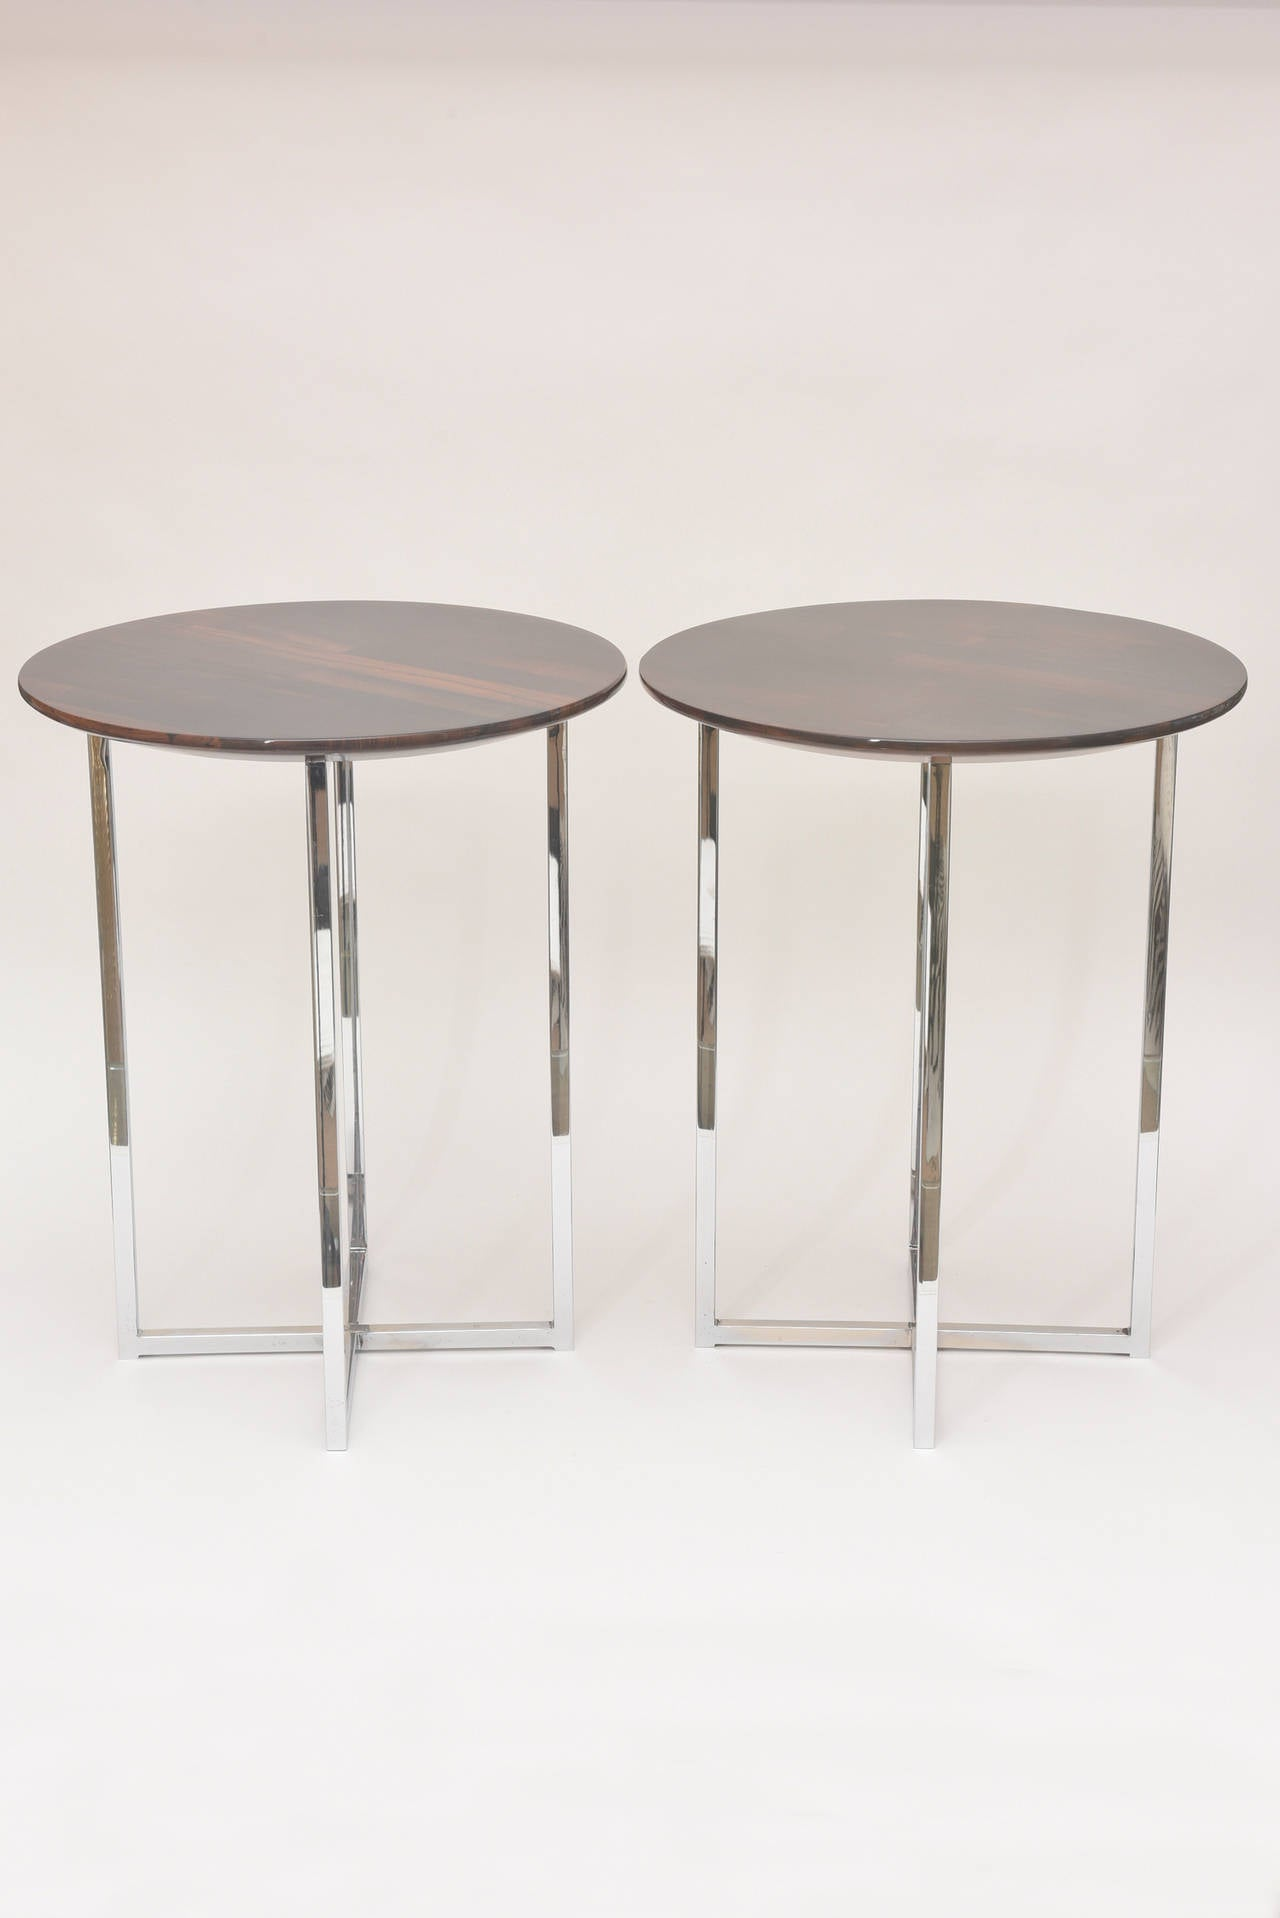 Pair of Milo Baughman Polished Chrome and Wood Side Tables/ HOLIDAY SALE For Sale 1